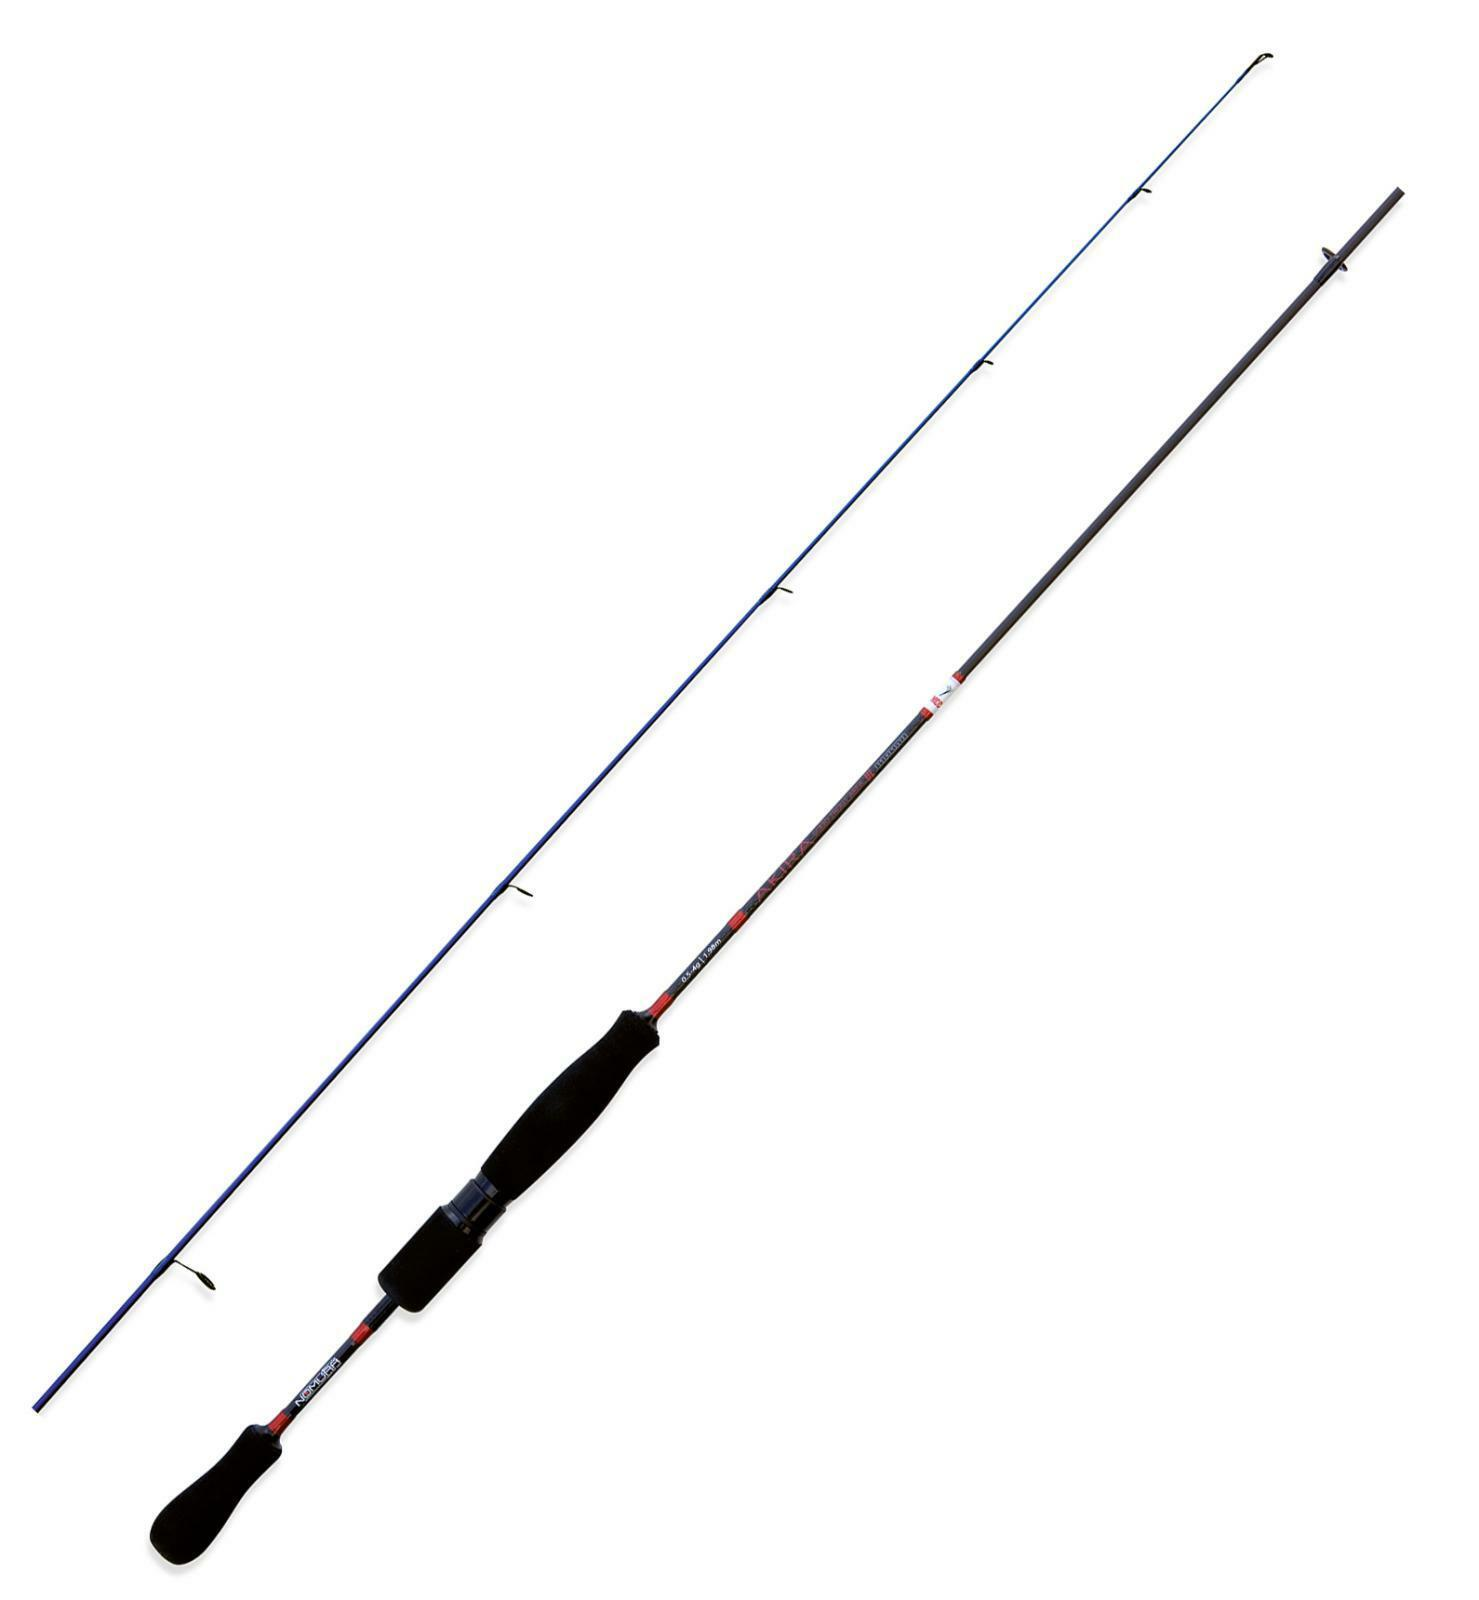 NM20520418 Nomura Canna pesca Trout Area Akira Solid 1,80cm  0,5-4 gr     PP